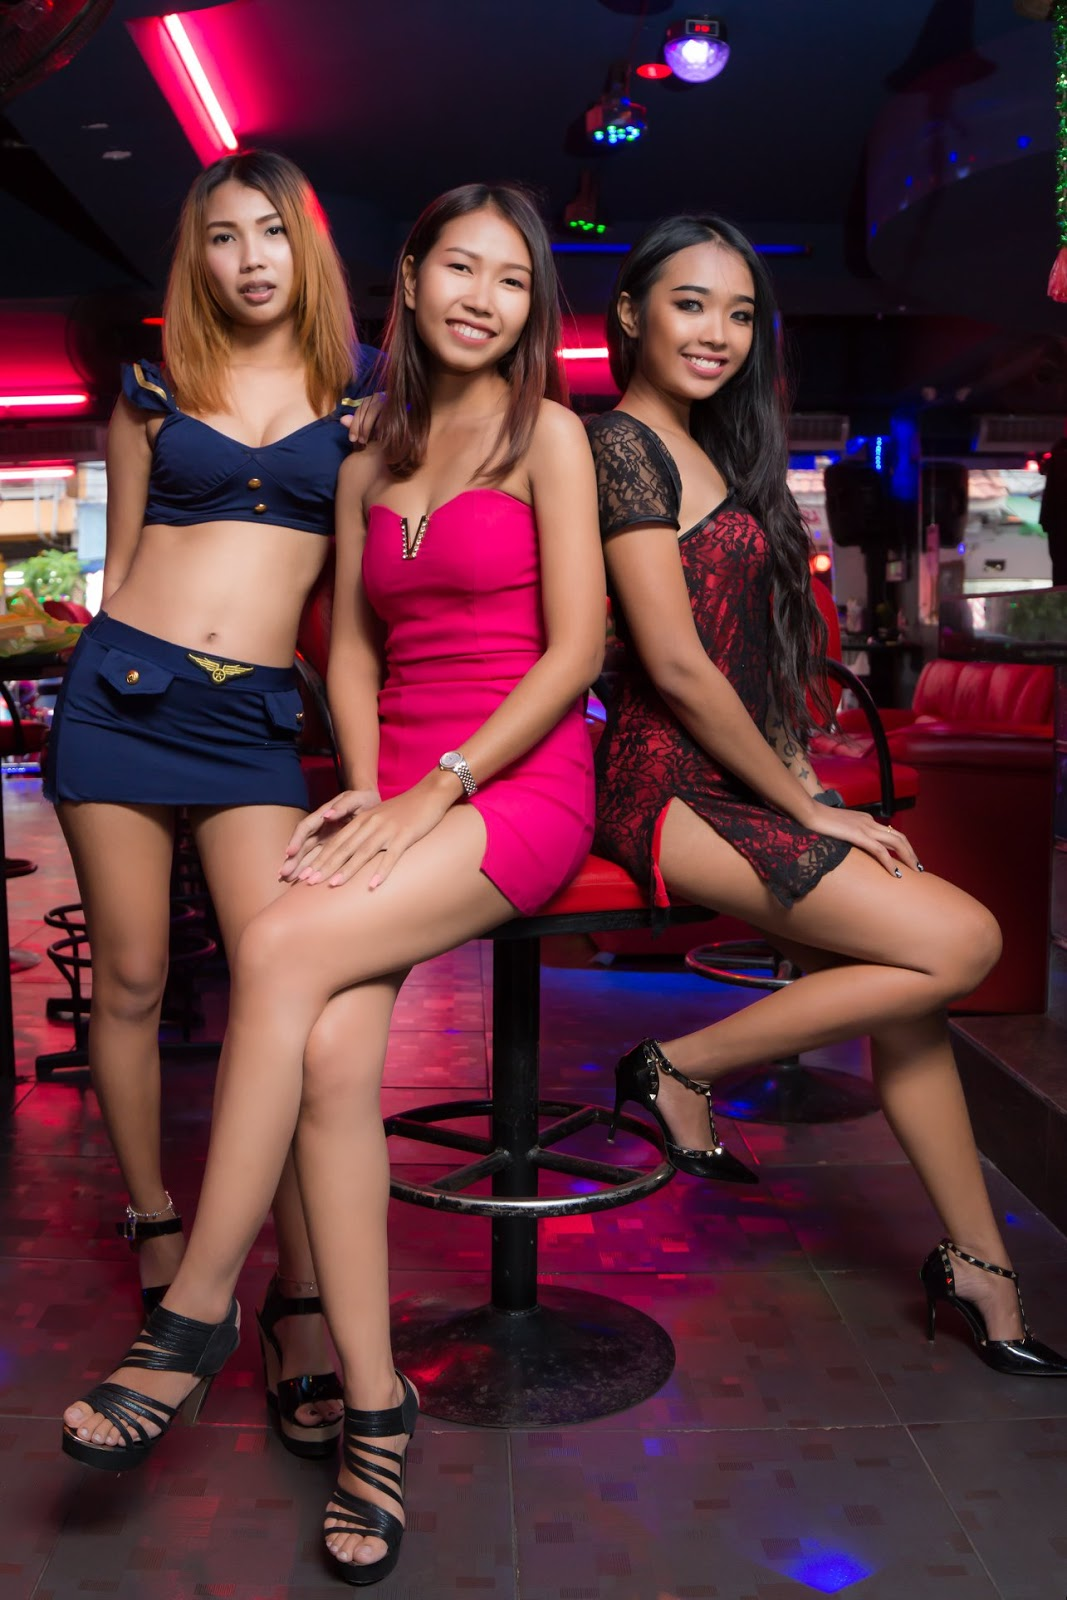 butt-babes-thai-bar-girl-tipsy-sexy-asian